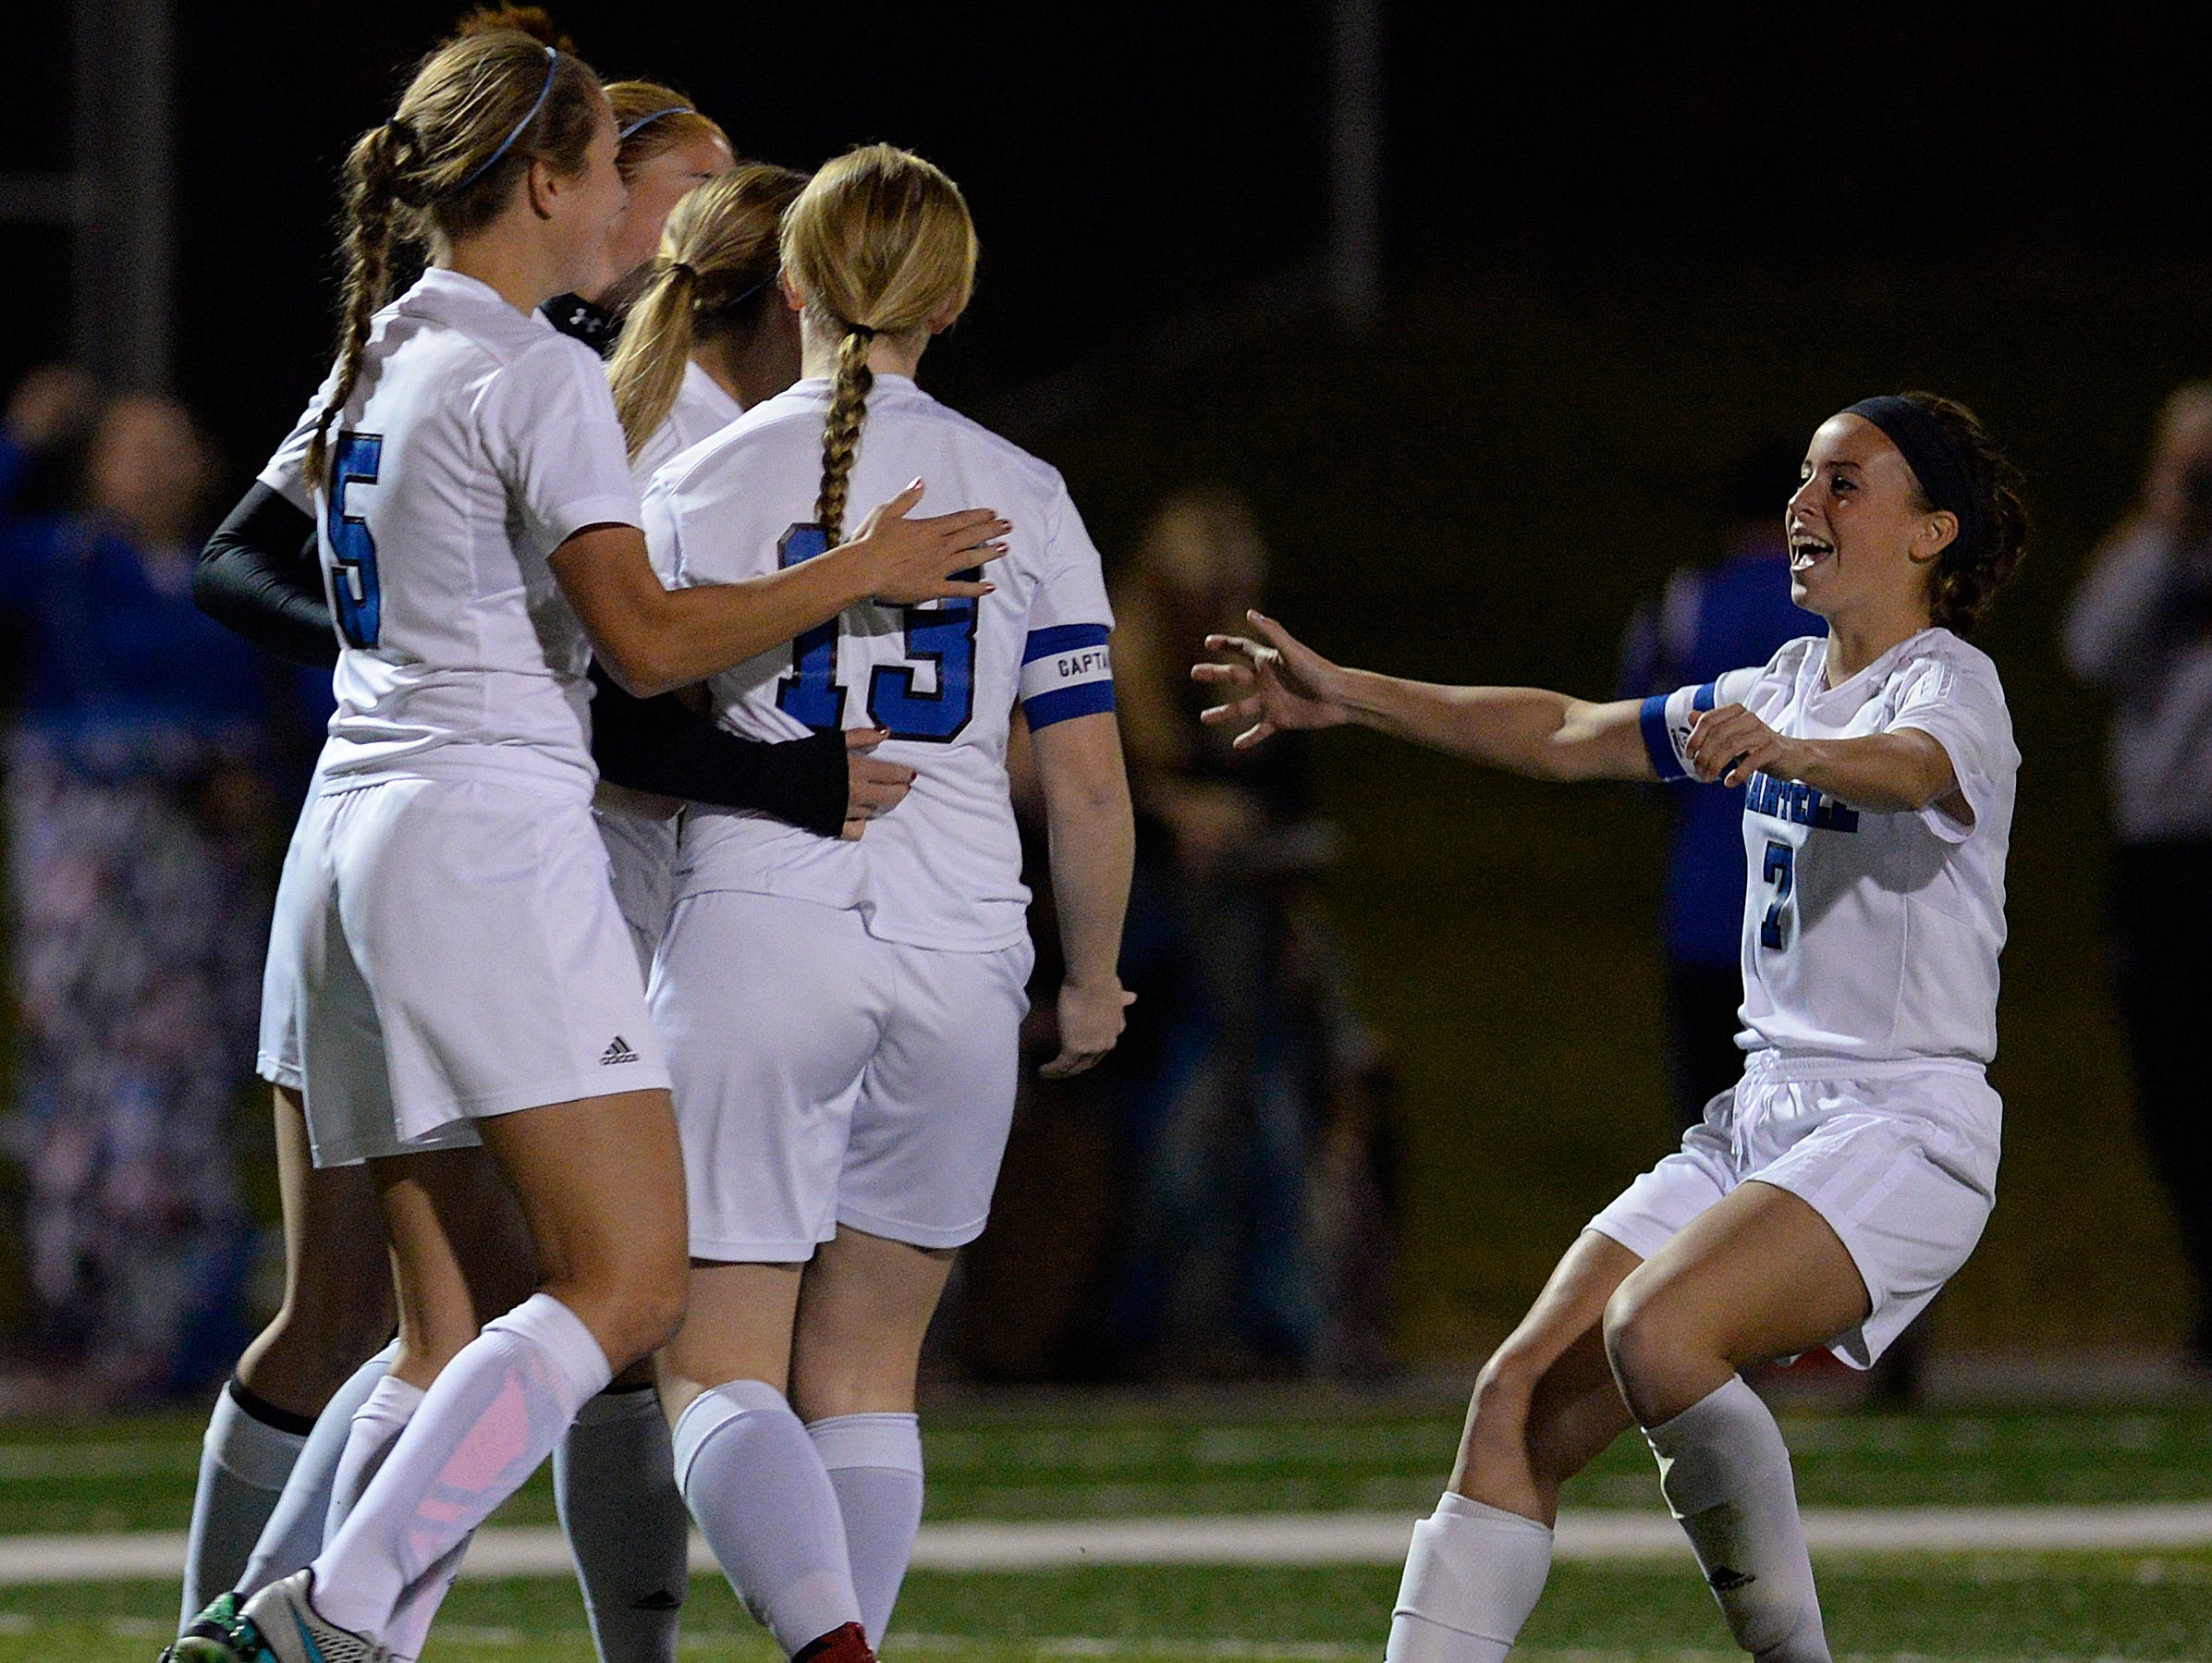 Sartell players celebrate their first goal from Tessa Hager (4) in the first half of their Sect. 8A championship game against St. Cloud Apollo Thursday, Oct. 22 at Husky Stadium.